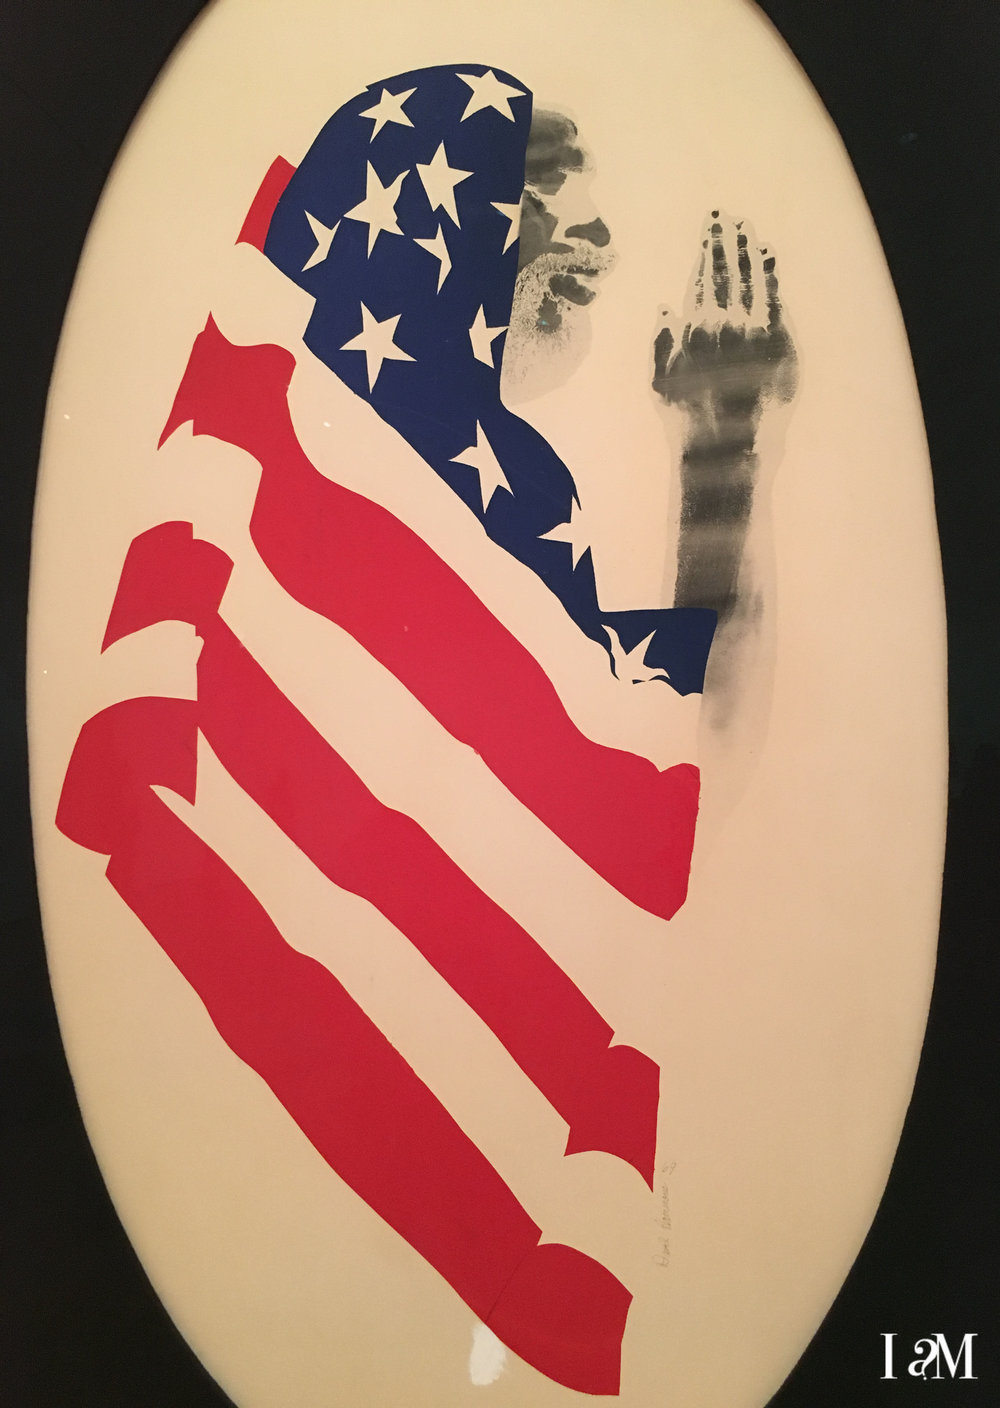 Pray for America - David Hammons, 1969